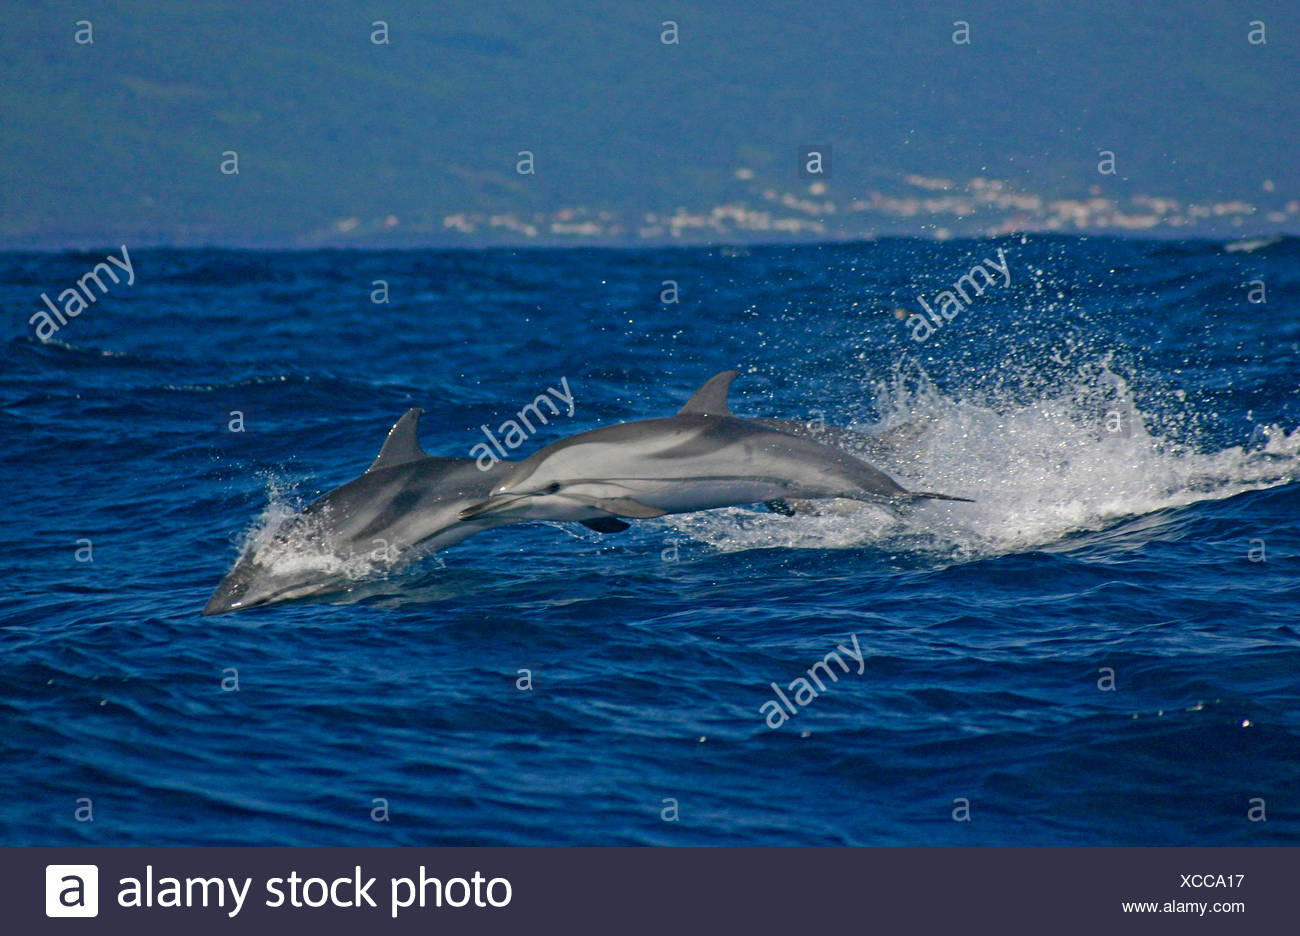 striped dolphin, blue-white dolphin, Euphrosyne dolphin (Stenella coeruleoalba), two dolphins jumping out of the sea, Portugal, Azores, Pico - Stock Image